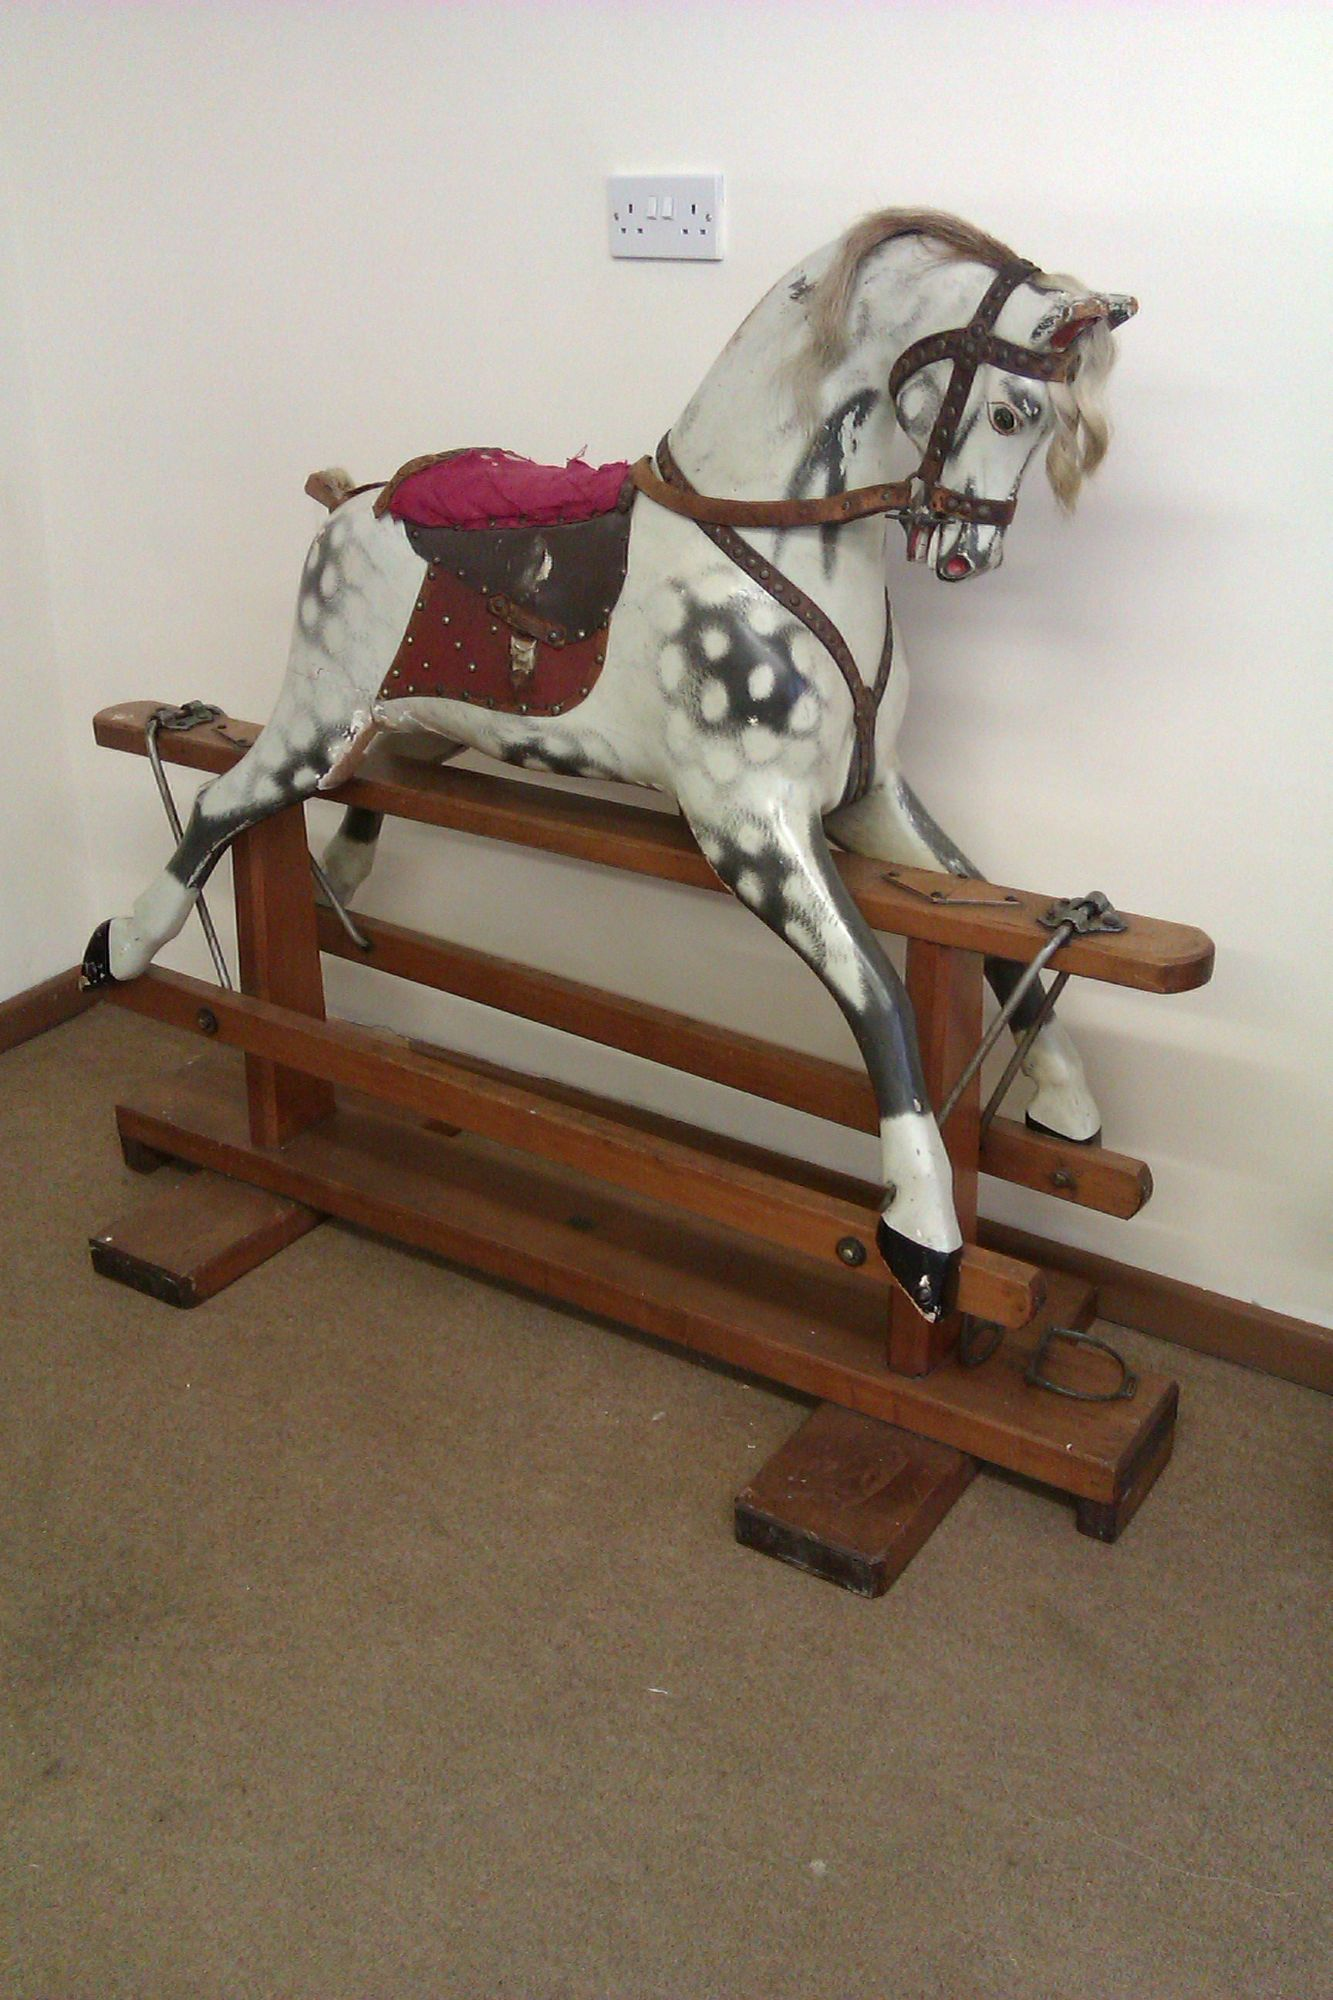 Baby Carriages rocking horse similar to Collinsons but with nicer carving